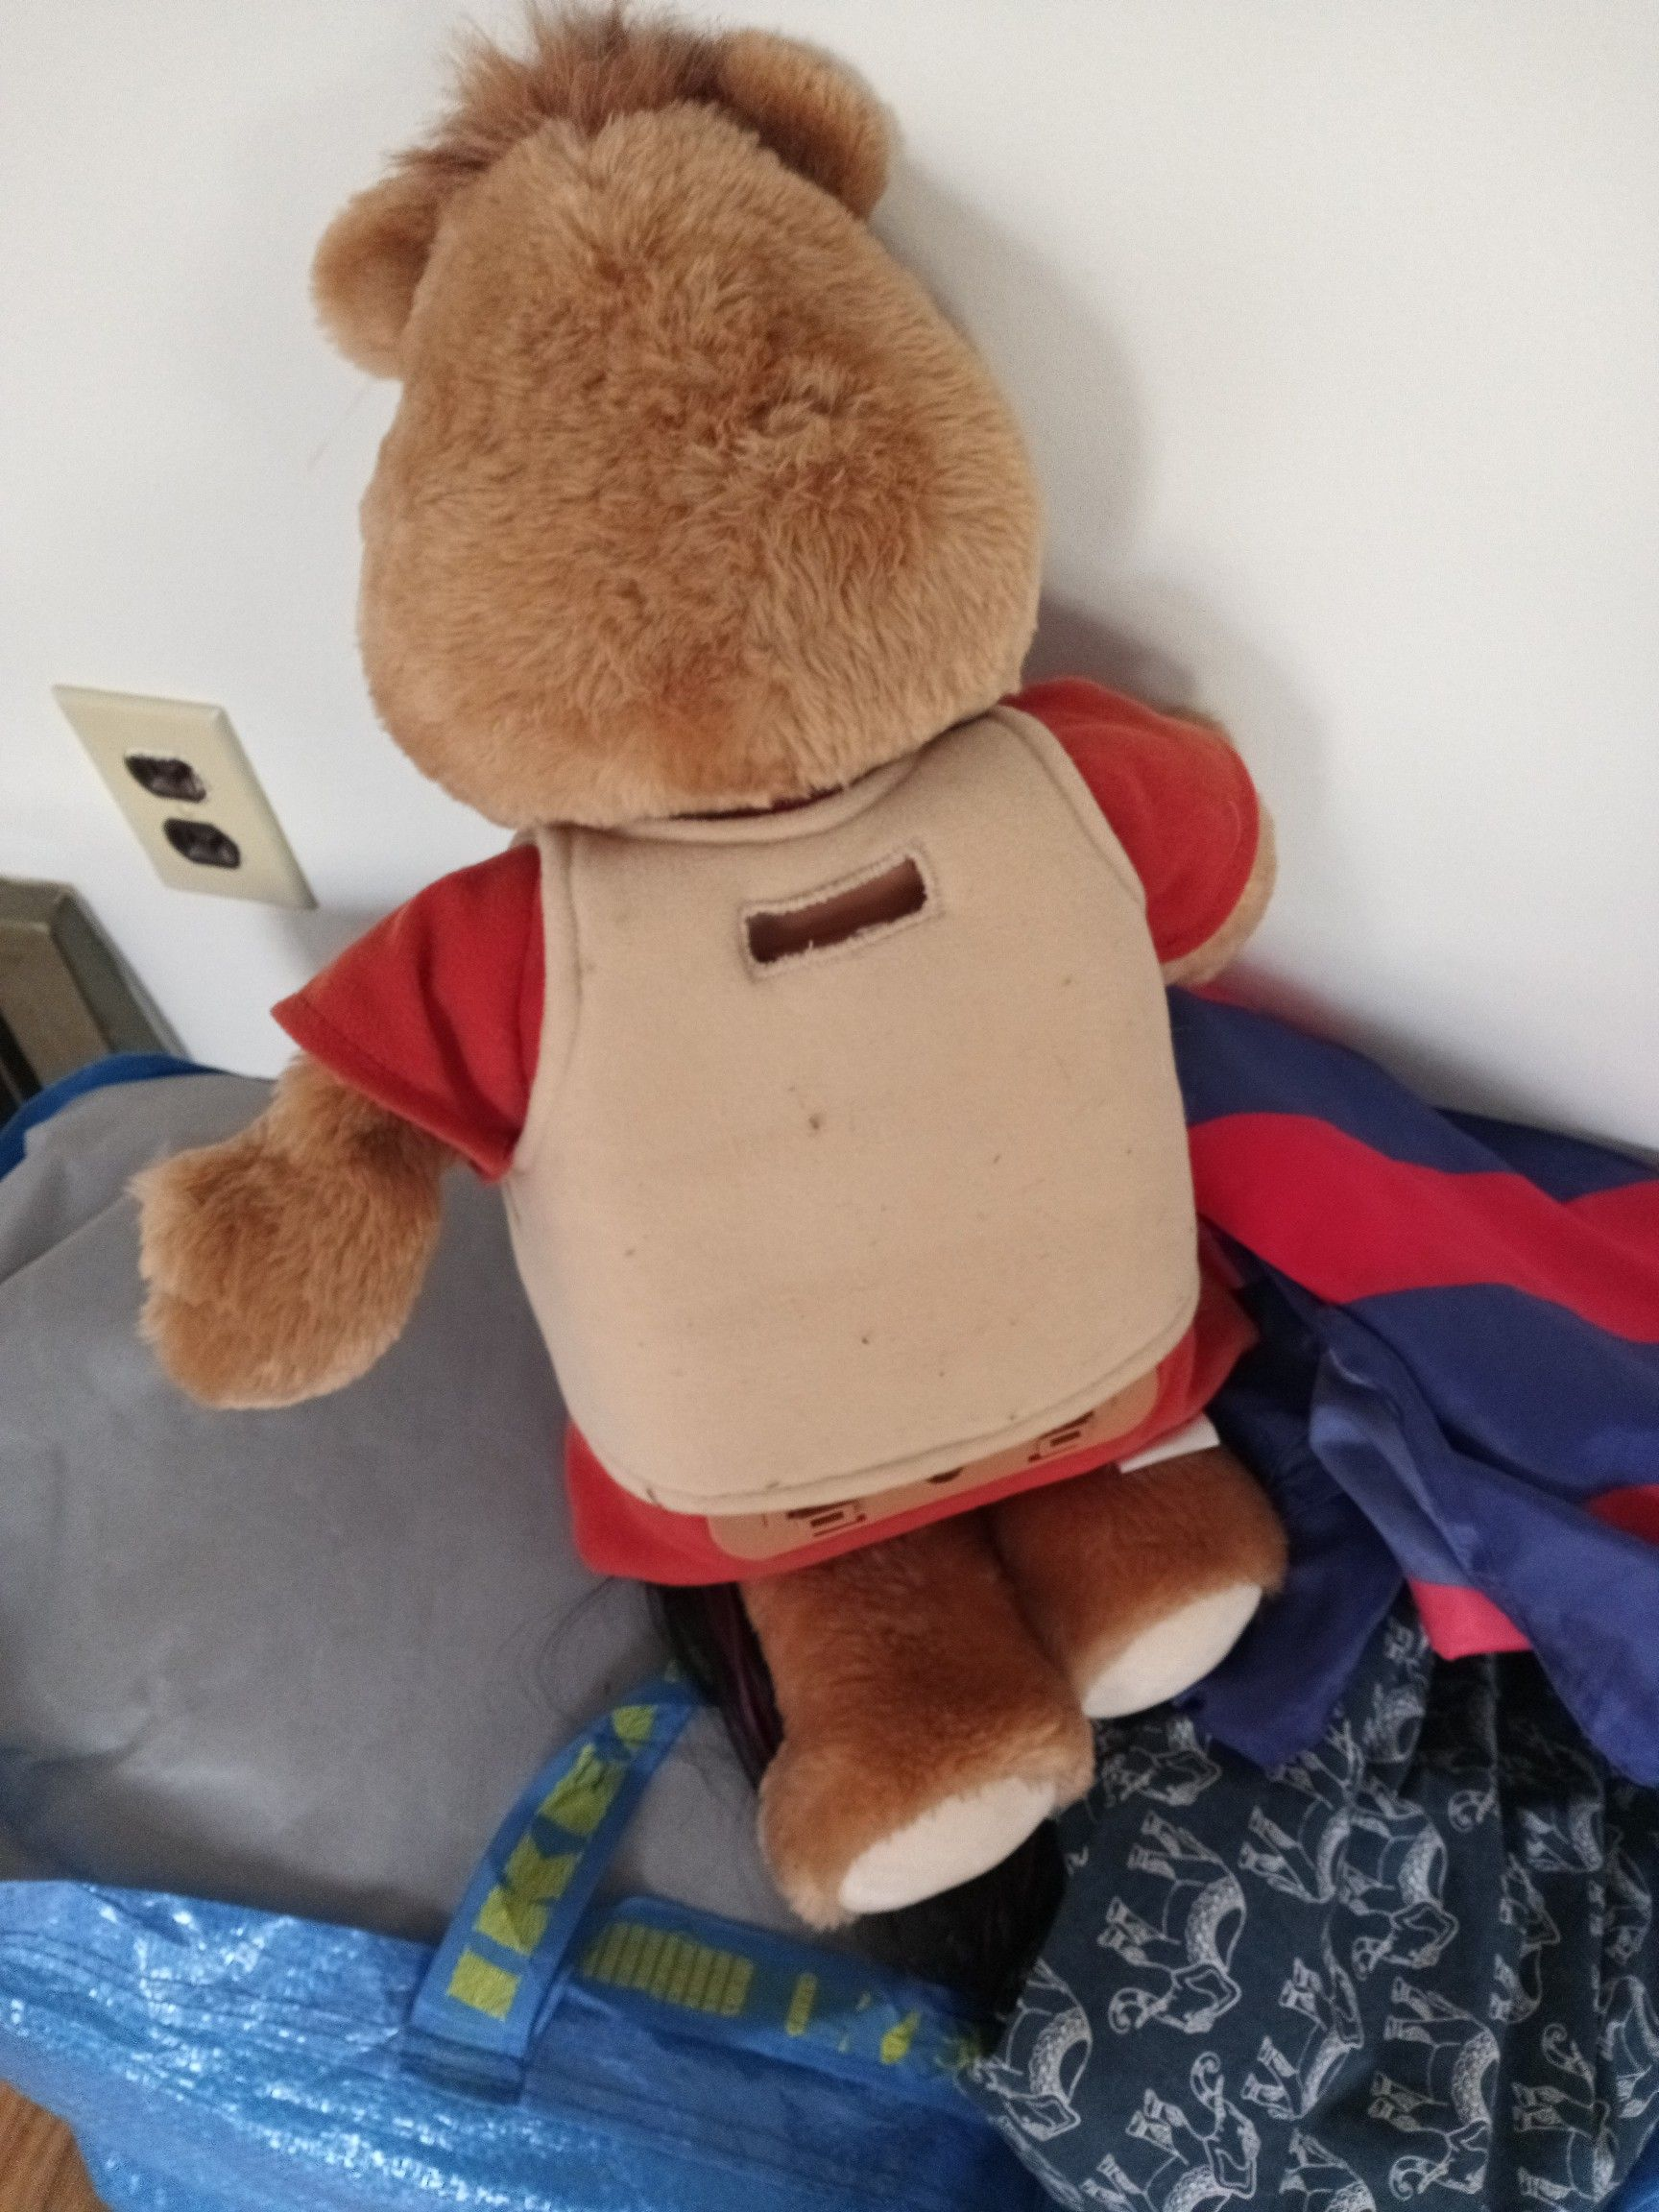 The real teddy ruxpin that works and talks